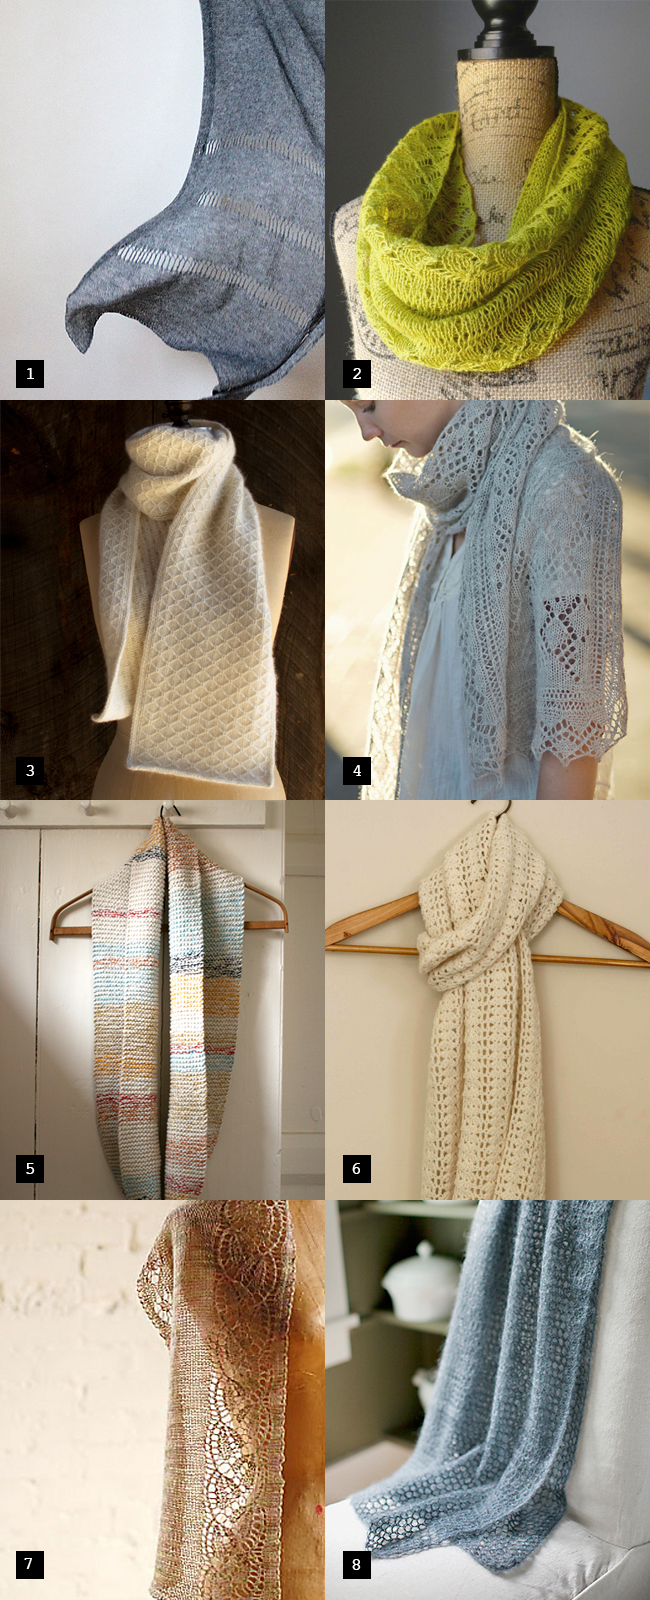 Knitting Pattern Spring Scarf : Pretty spring scarves: Or, what to knit for Mother s Day Fringe Association